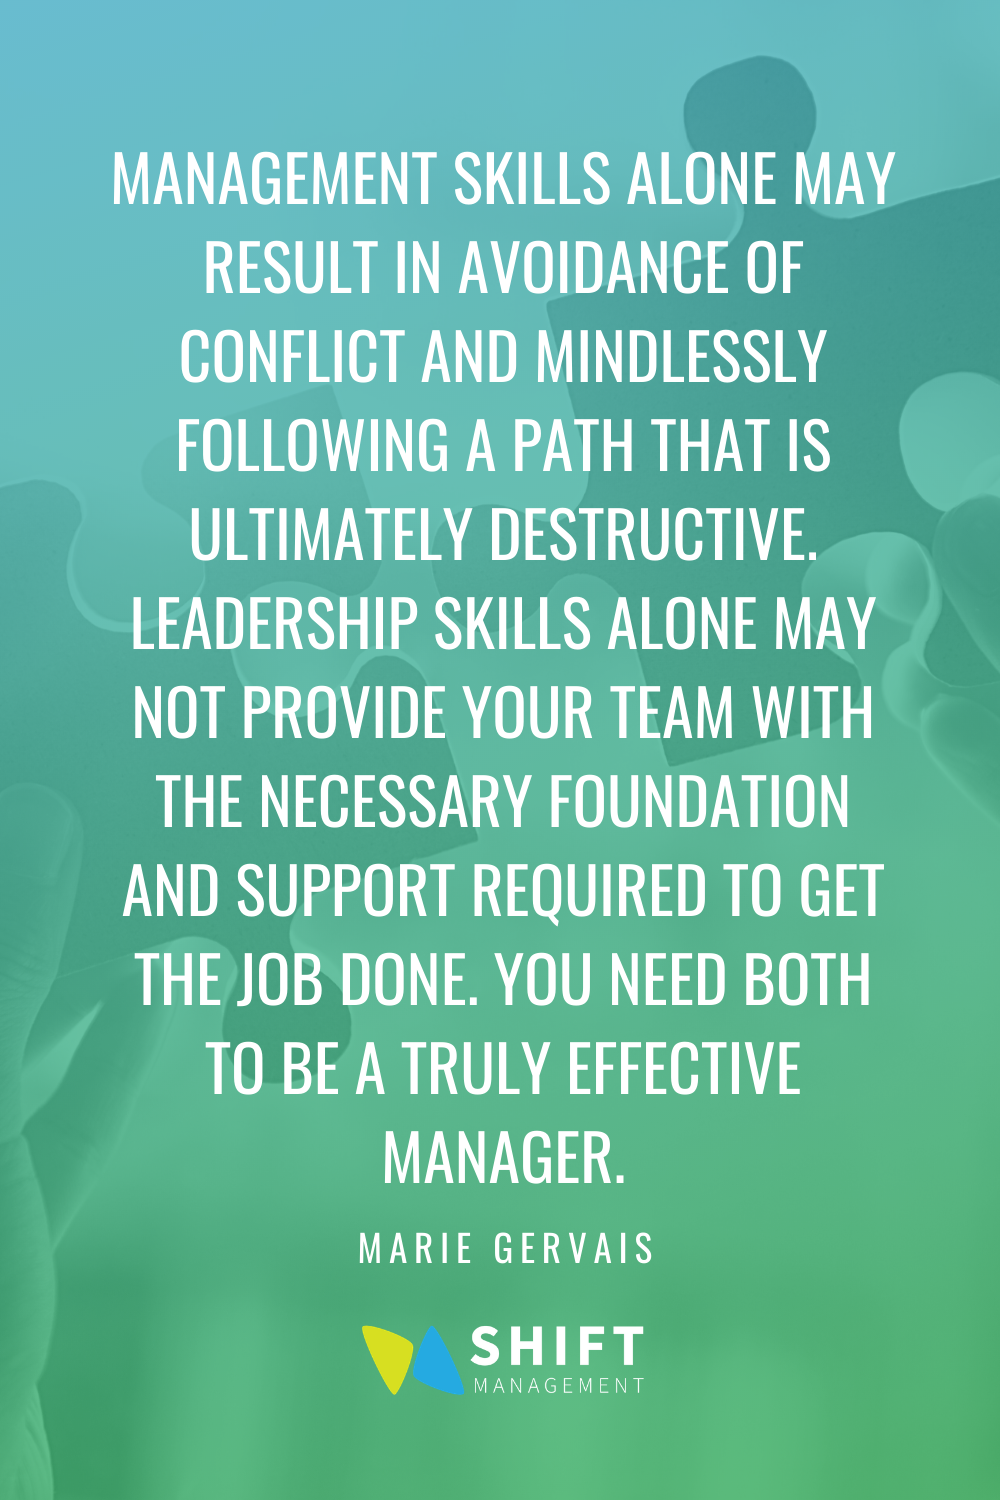 You need both the leadership and management skills to be a truly effective manager